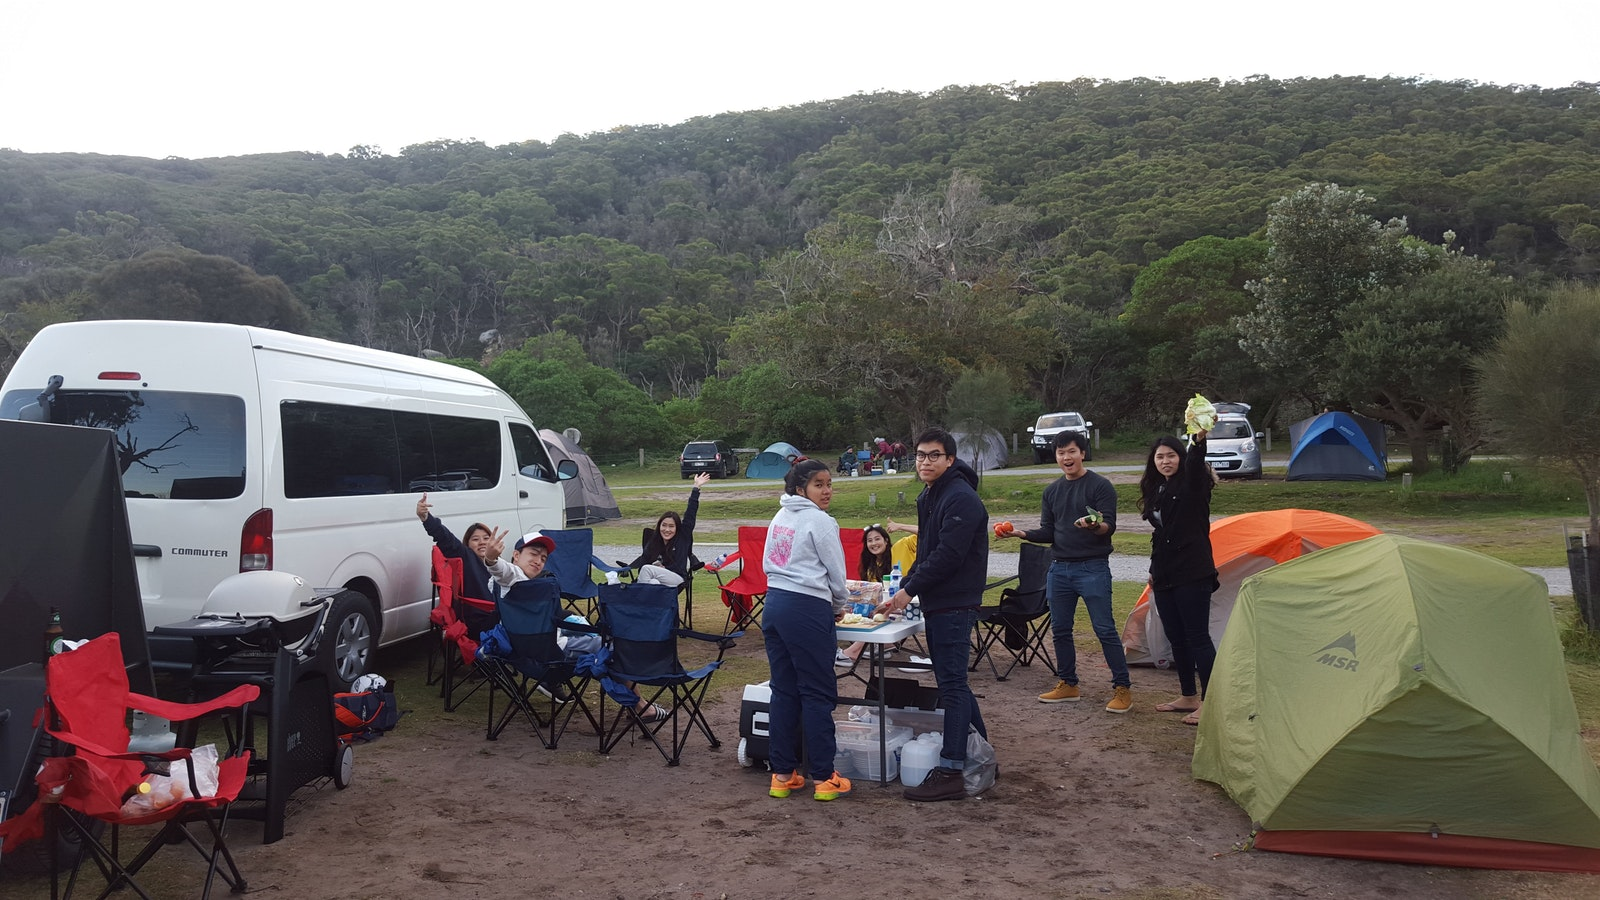 Camping at Tidal River